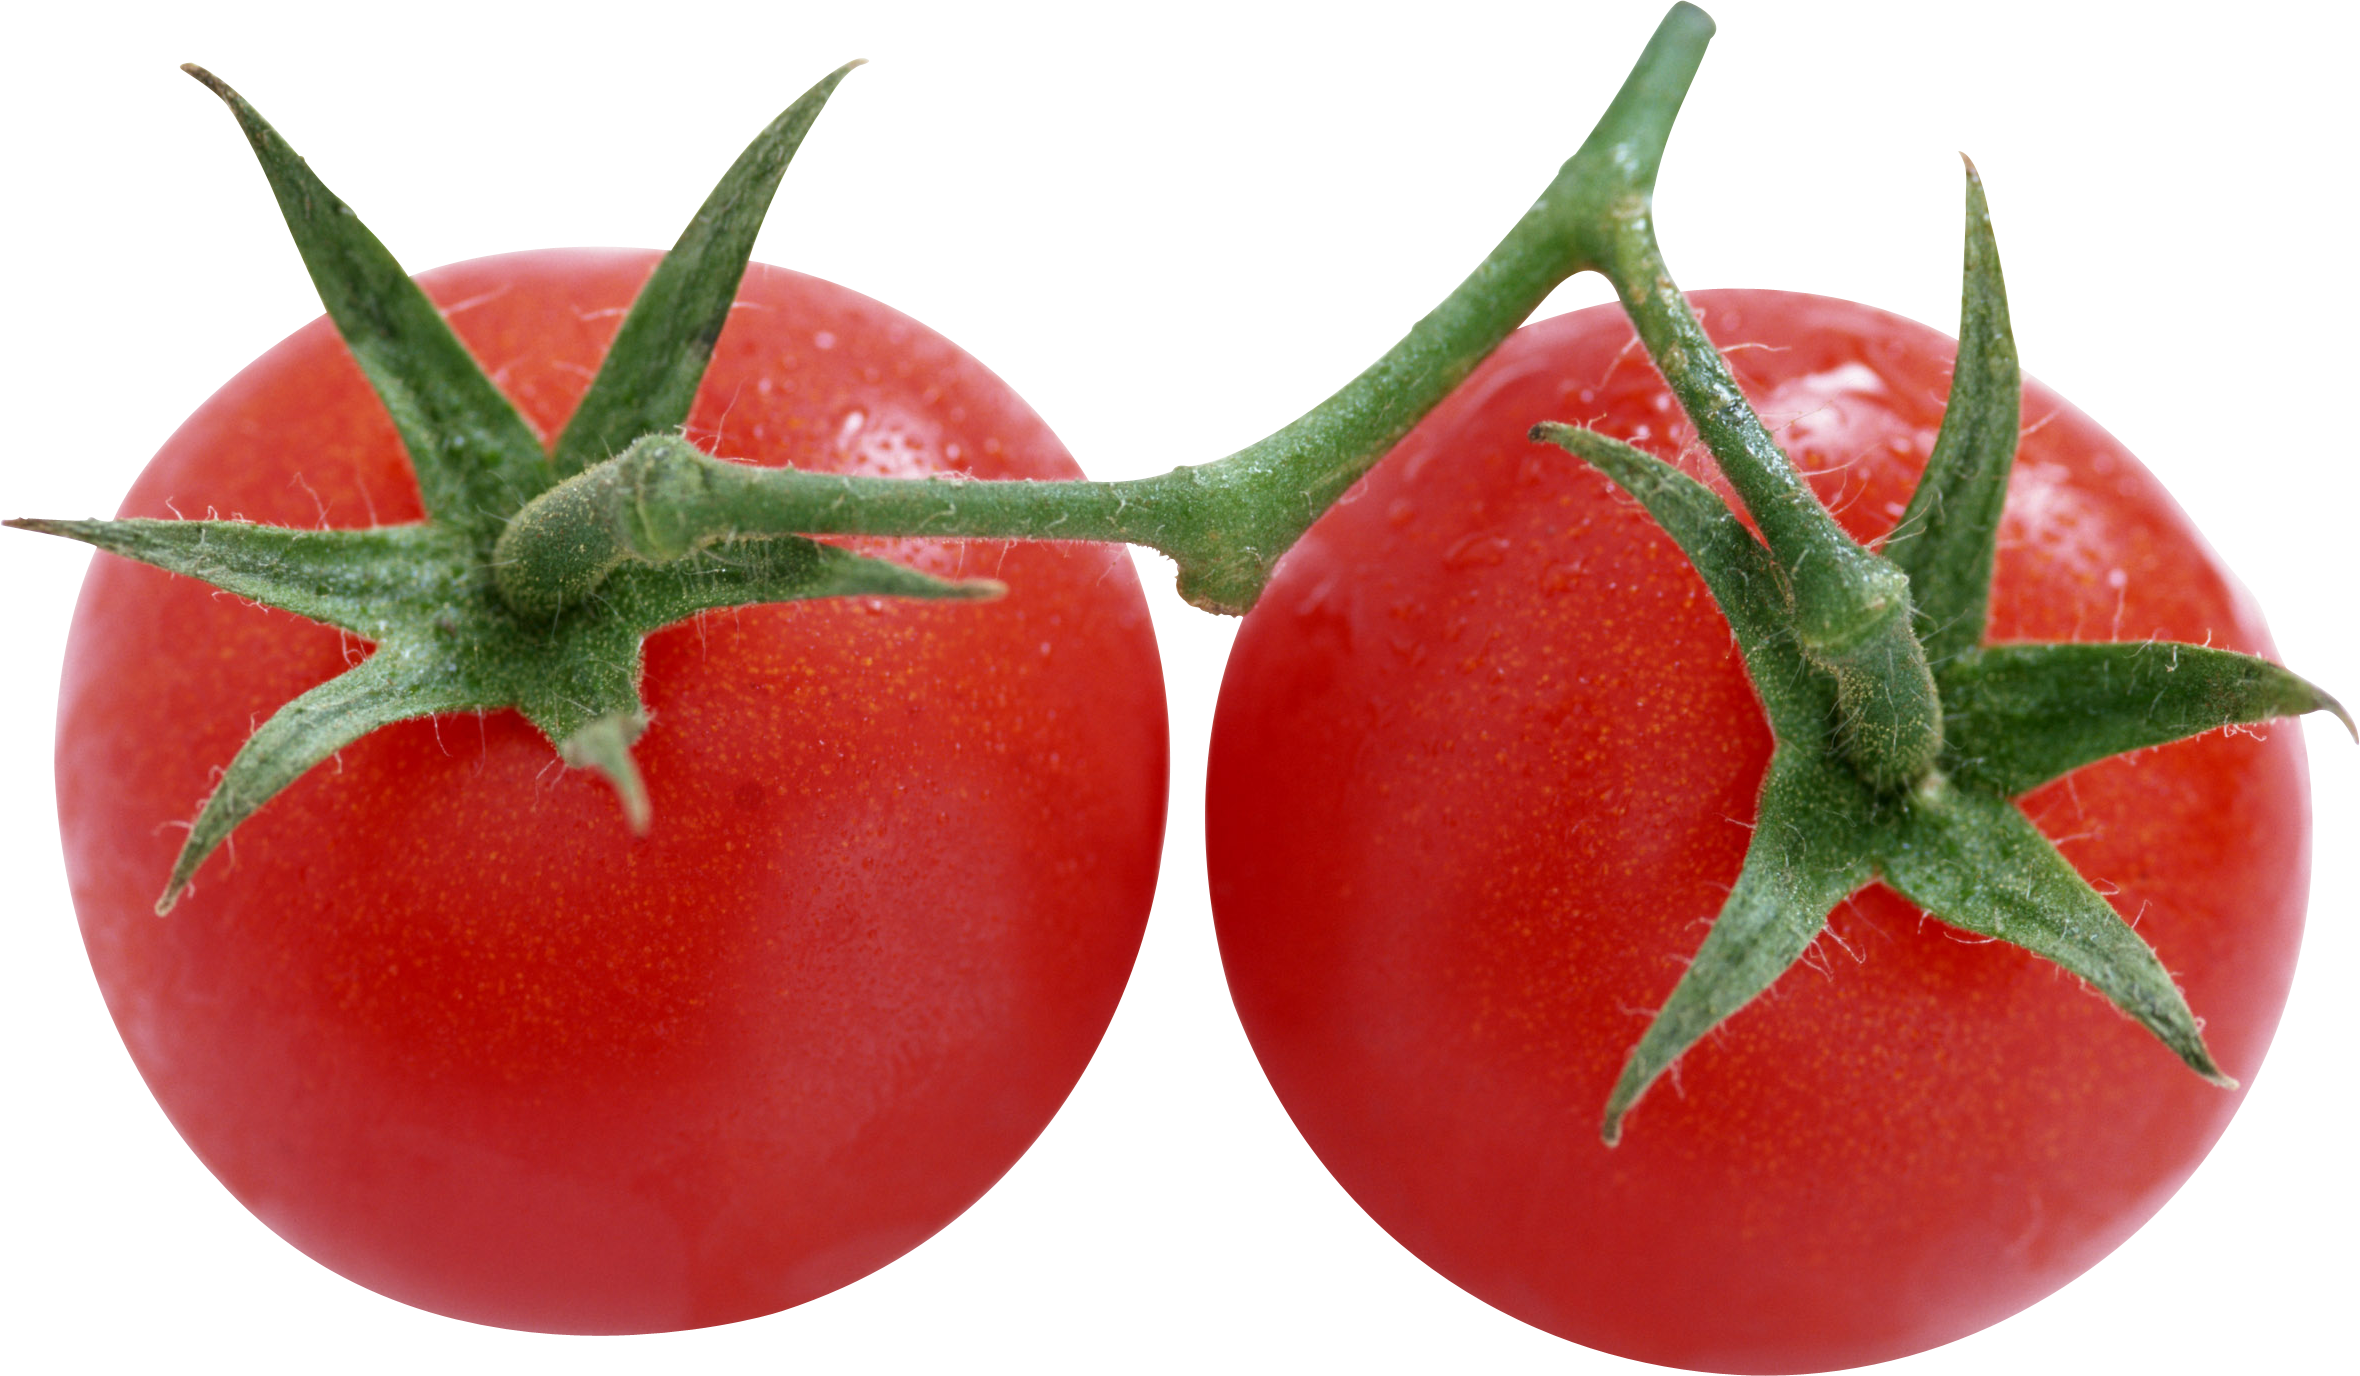 Tomatoes clipart tomato fruit. Red png image purepng